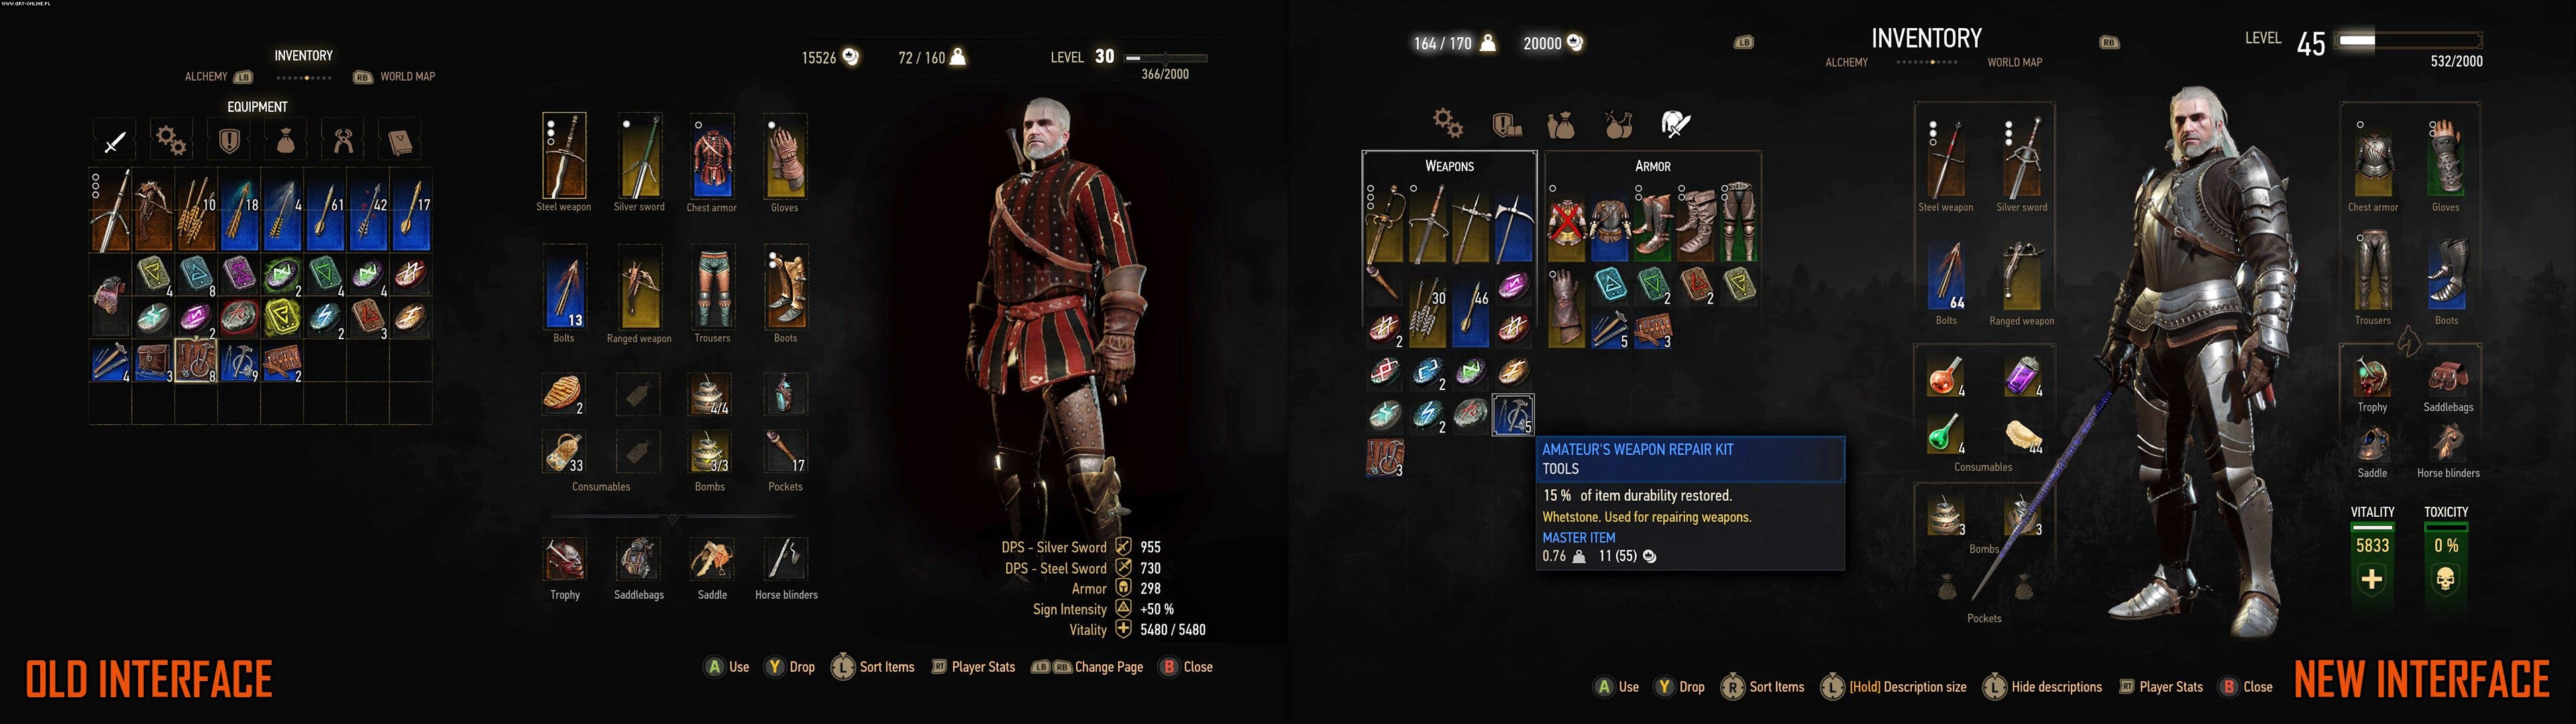 the-witcher-3-blood-and-wine-interface-2